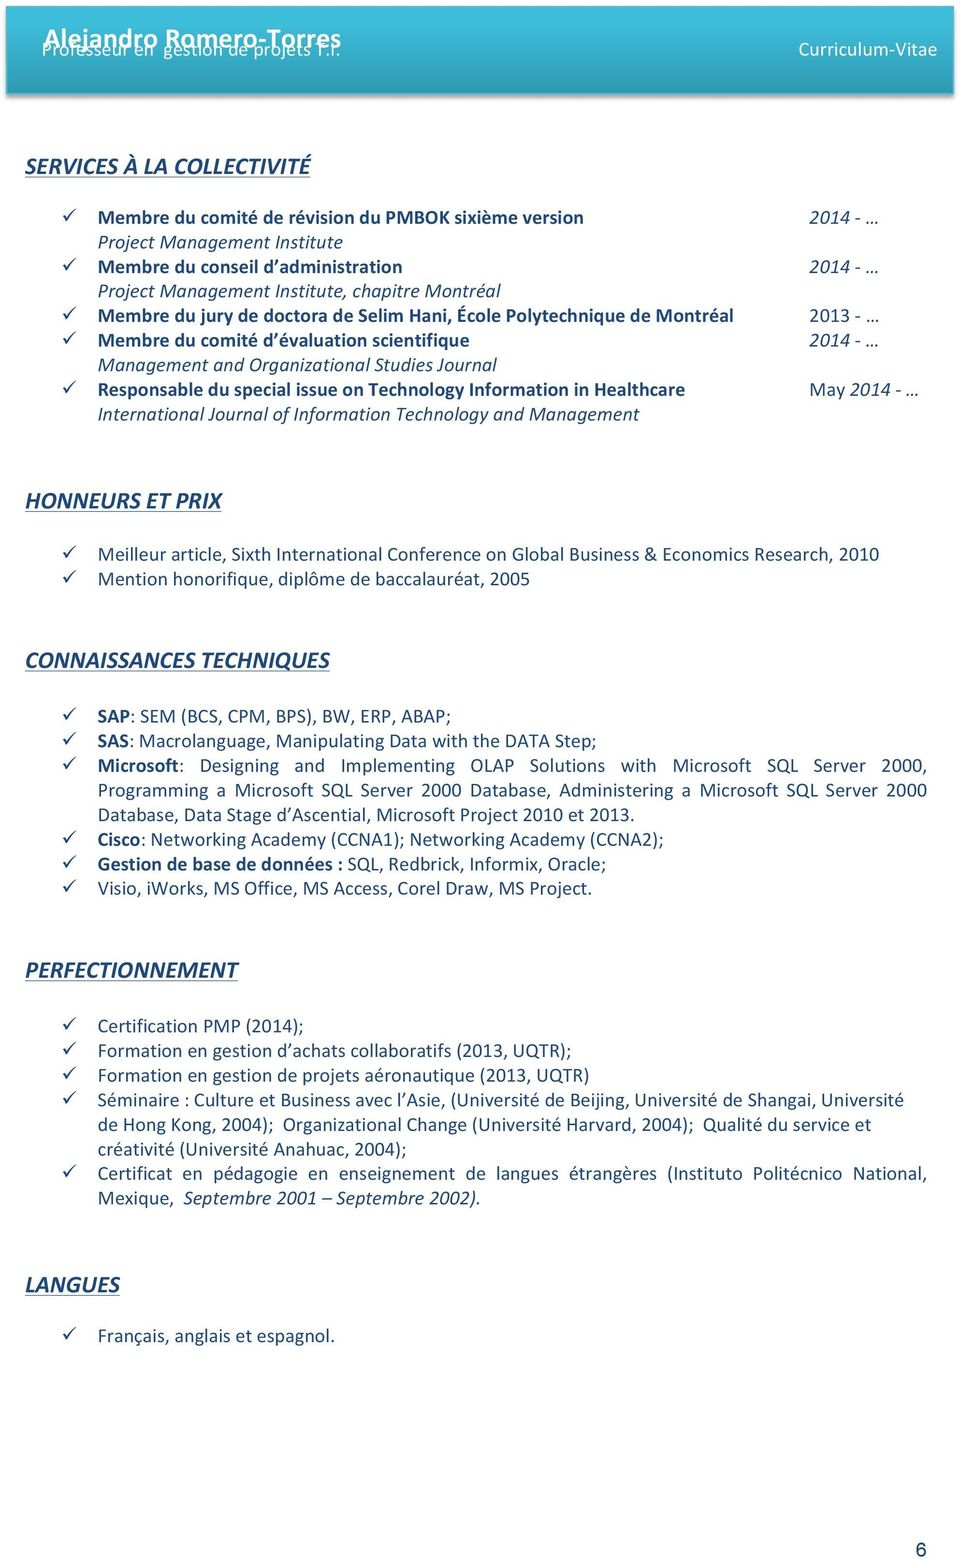 special issue on Technology Information in Healthcare May 2014 - International Journal of Information Technology and Management HONNEURS ET PRIX Meilleur article, Sixth International Conference on